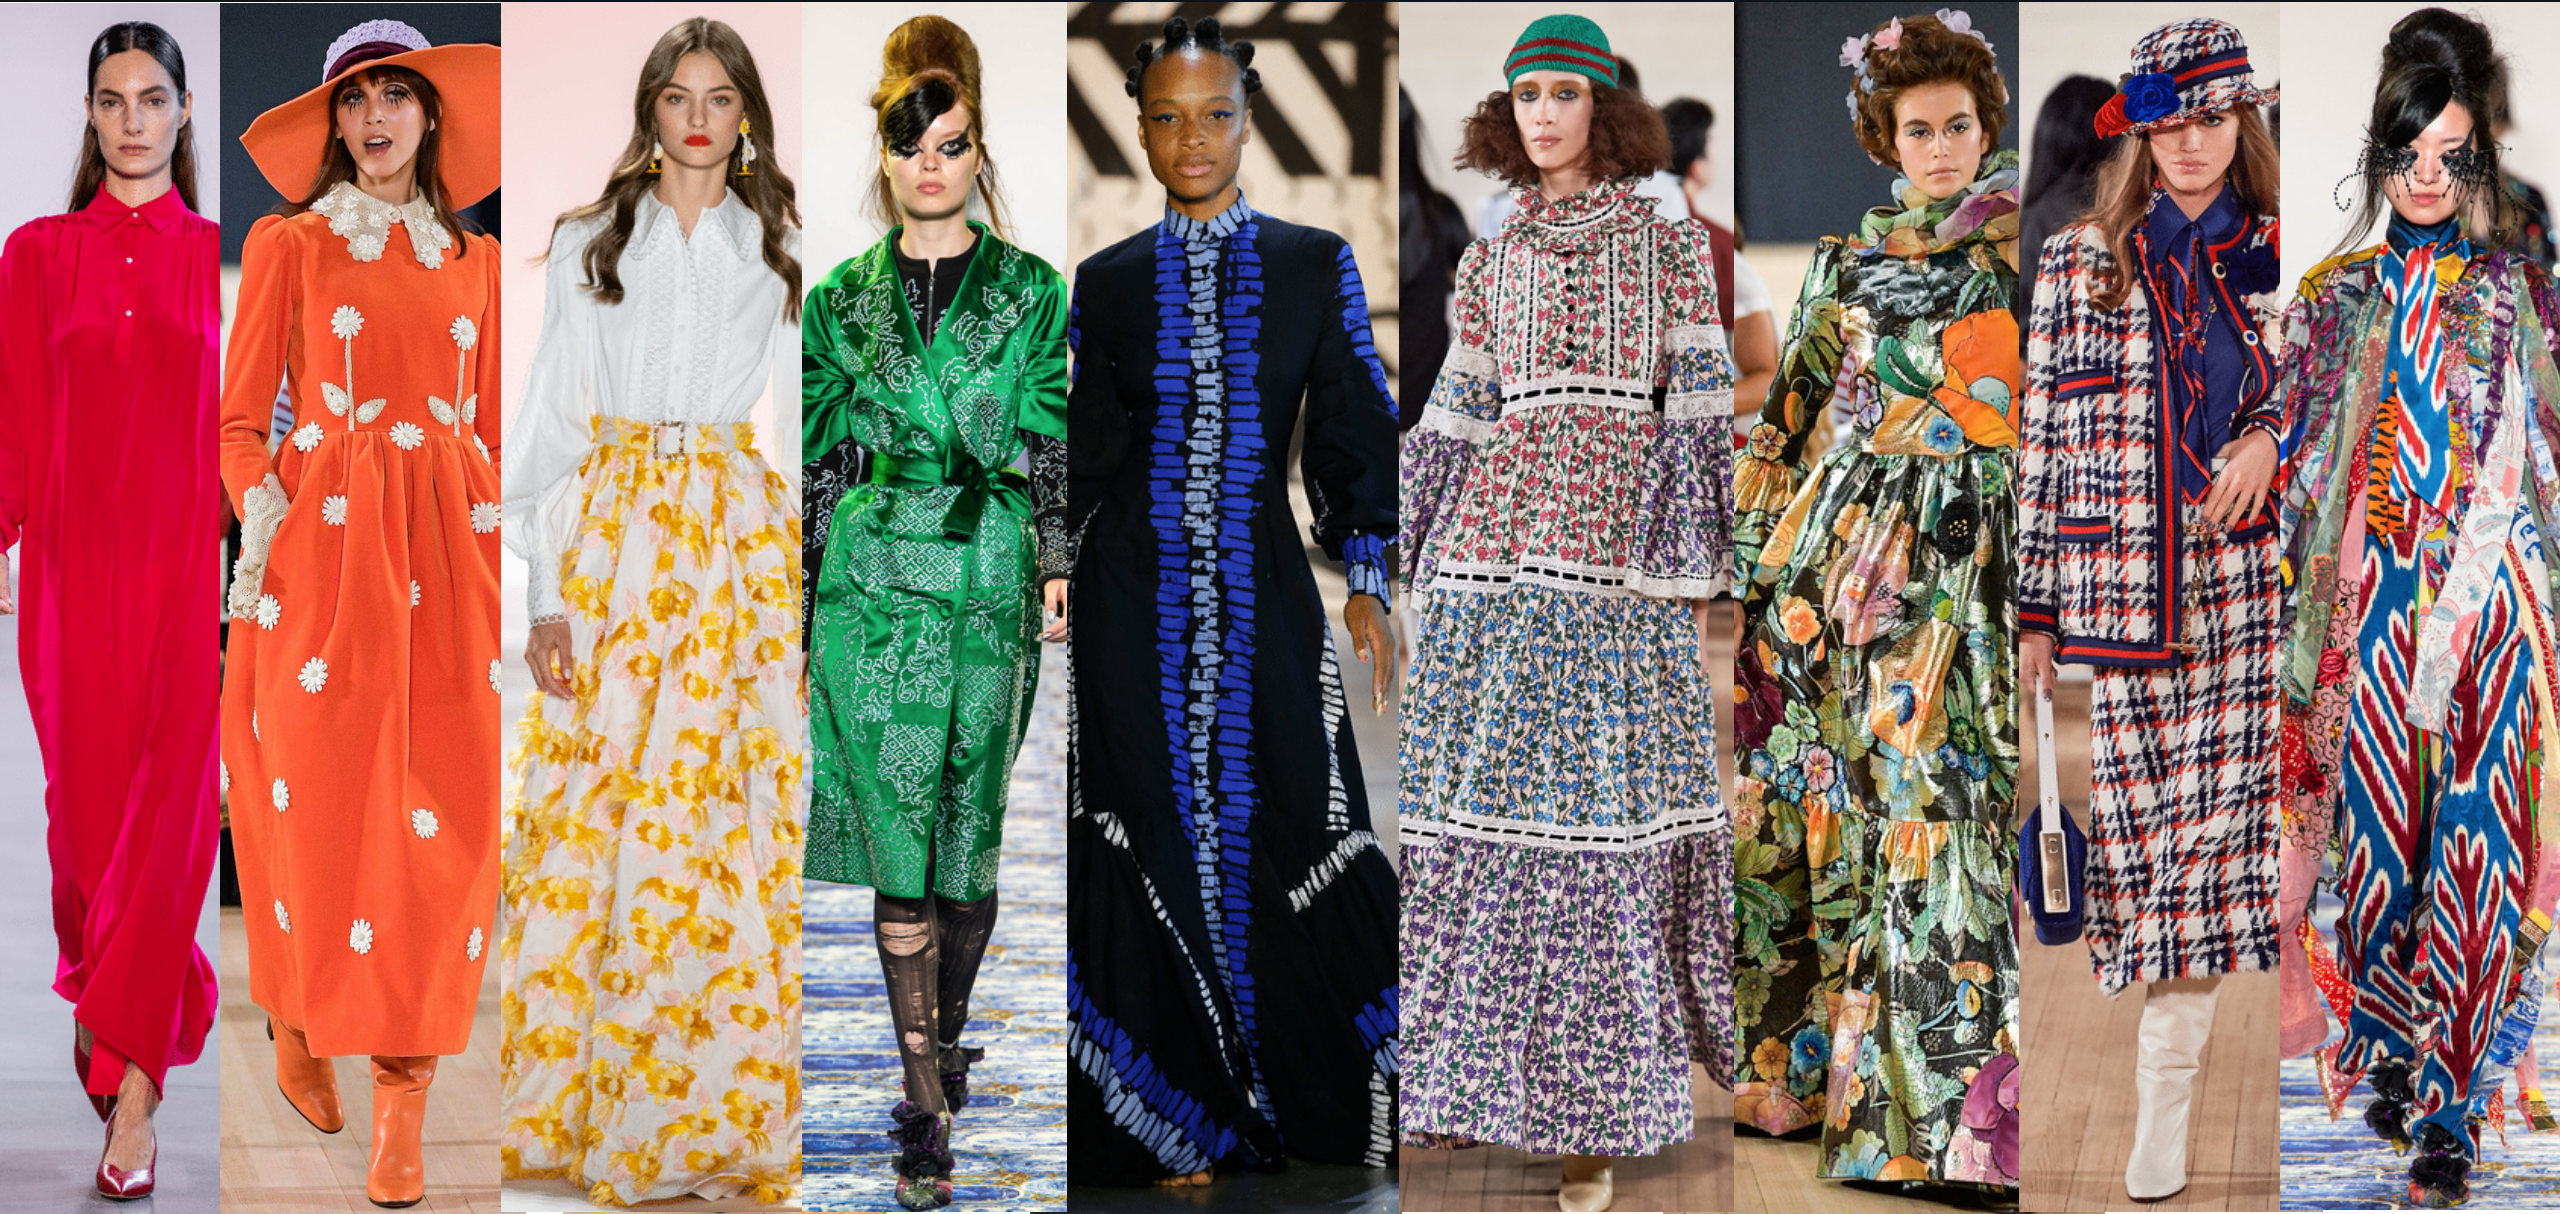 The Top Ten Modest Trends From Spring 2020 Fashion Week